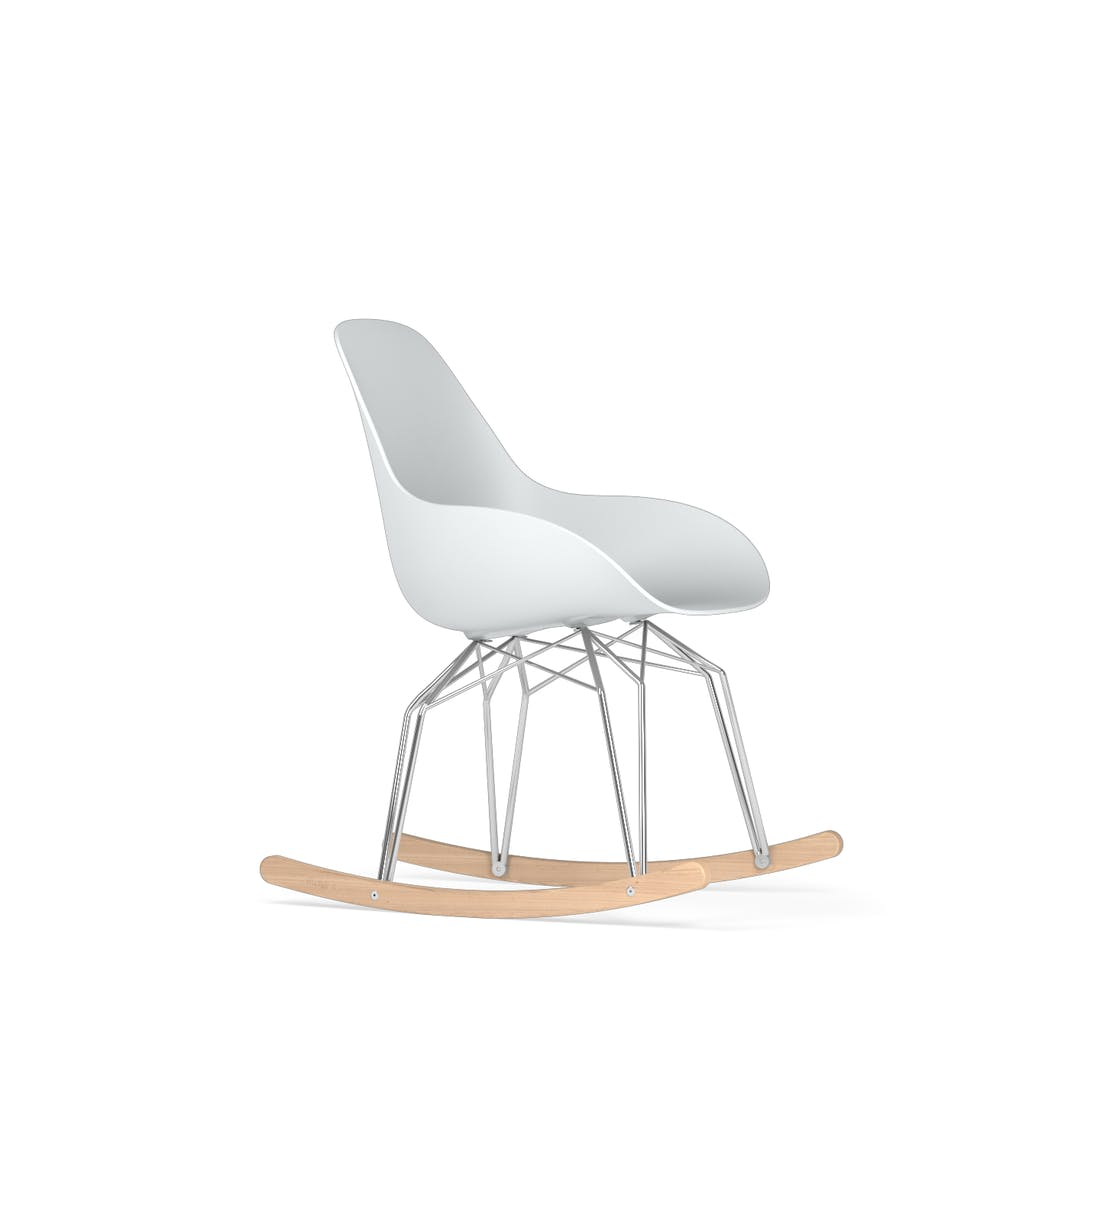 Kubikoff design chair 1402cn 10